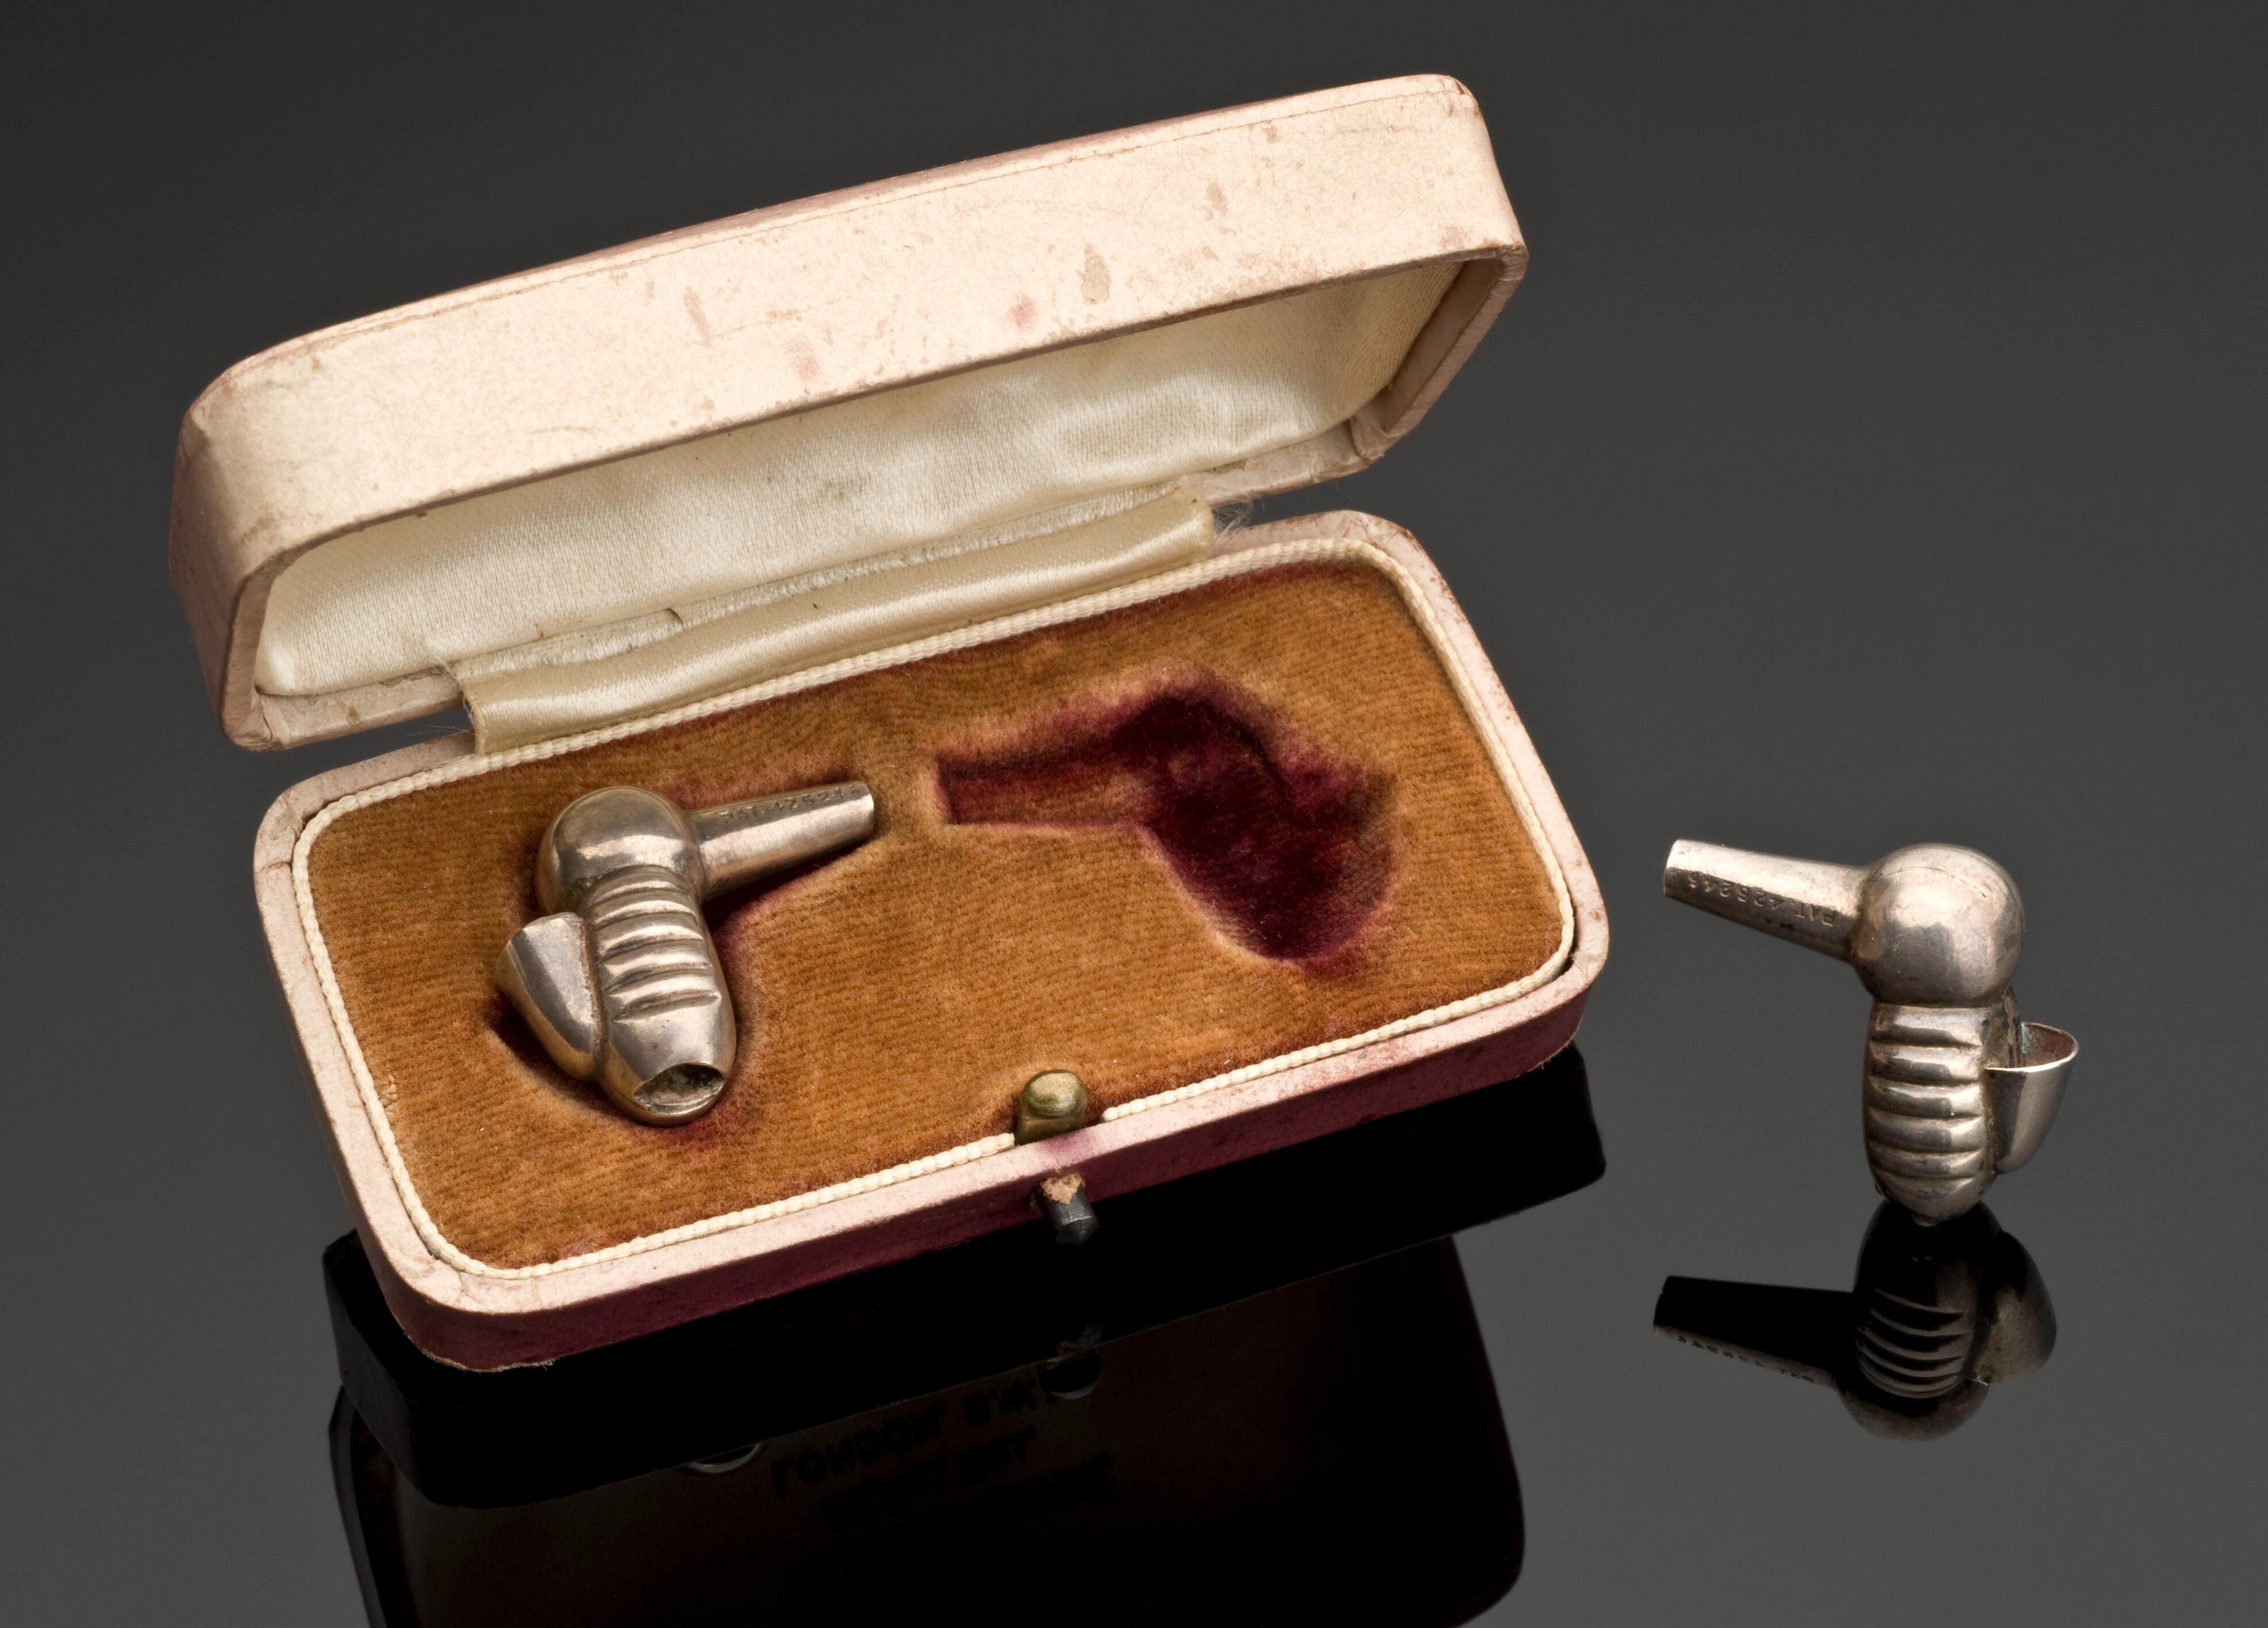 A small leather and fabric box containing two metal hearing aids shaped similarly to hummingbirds.